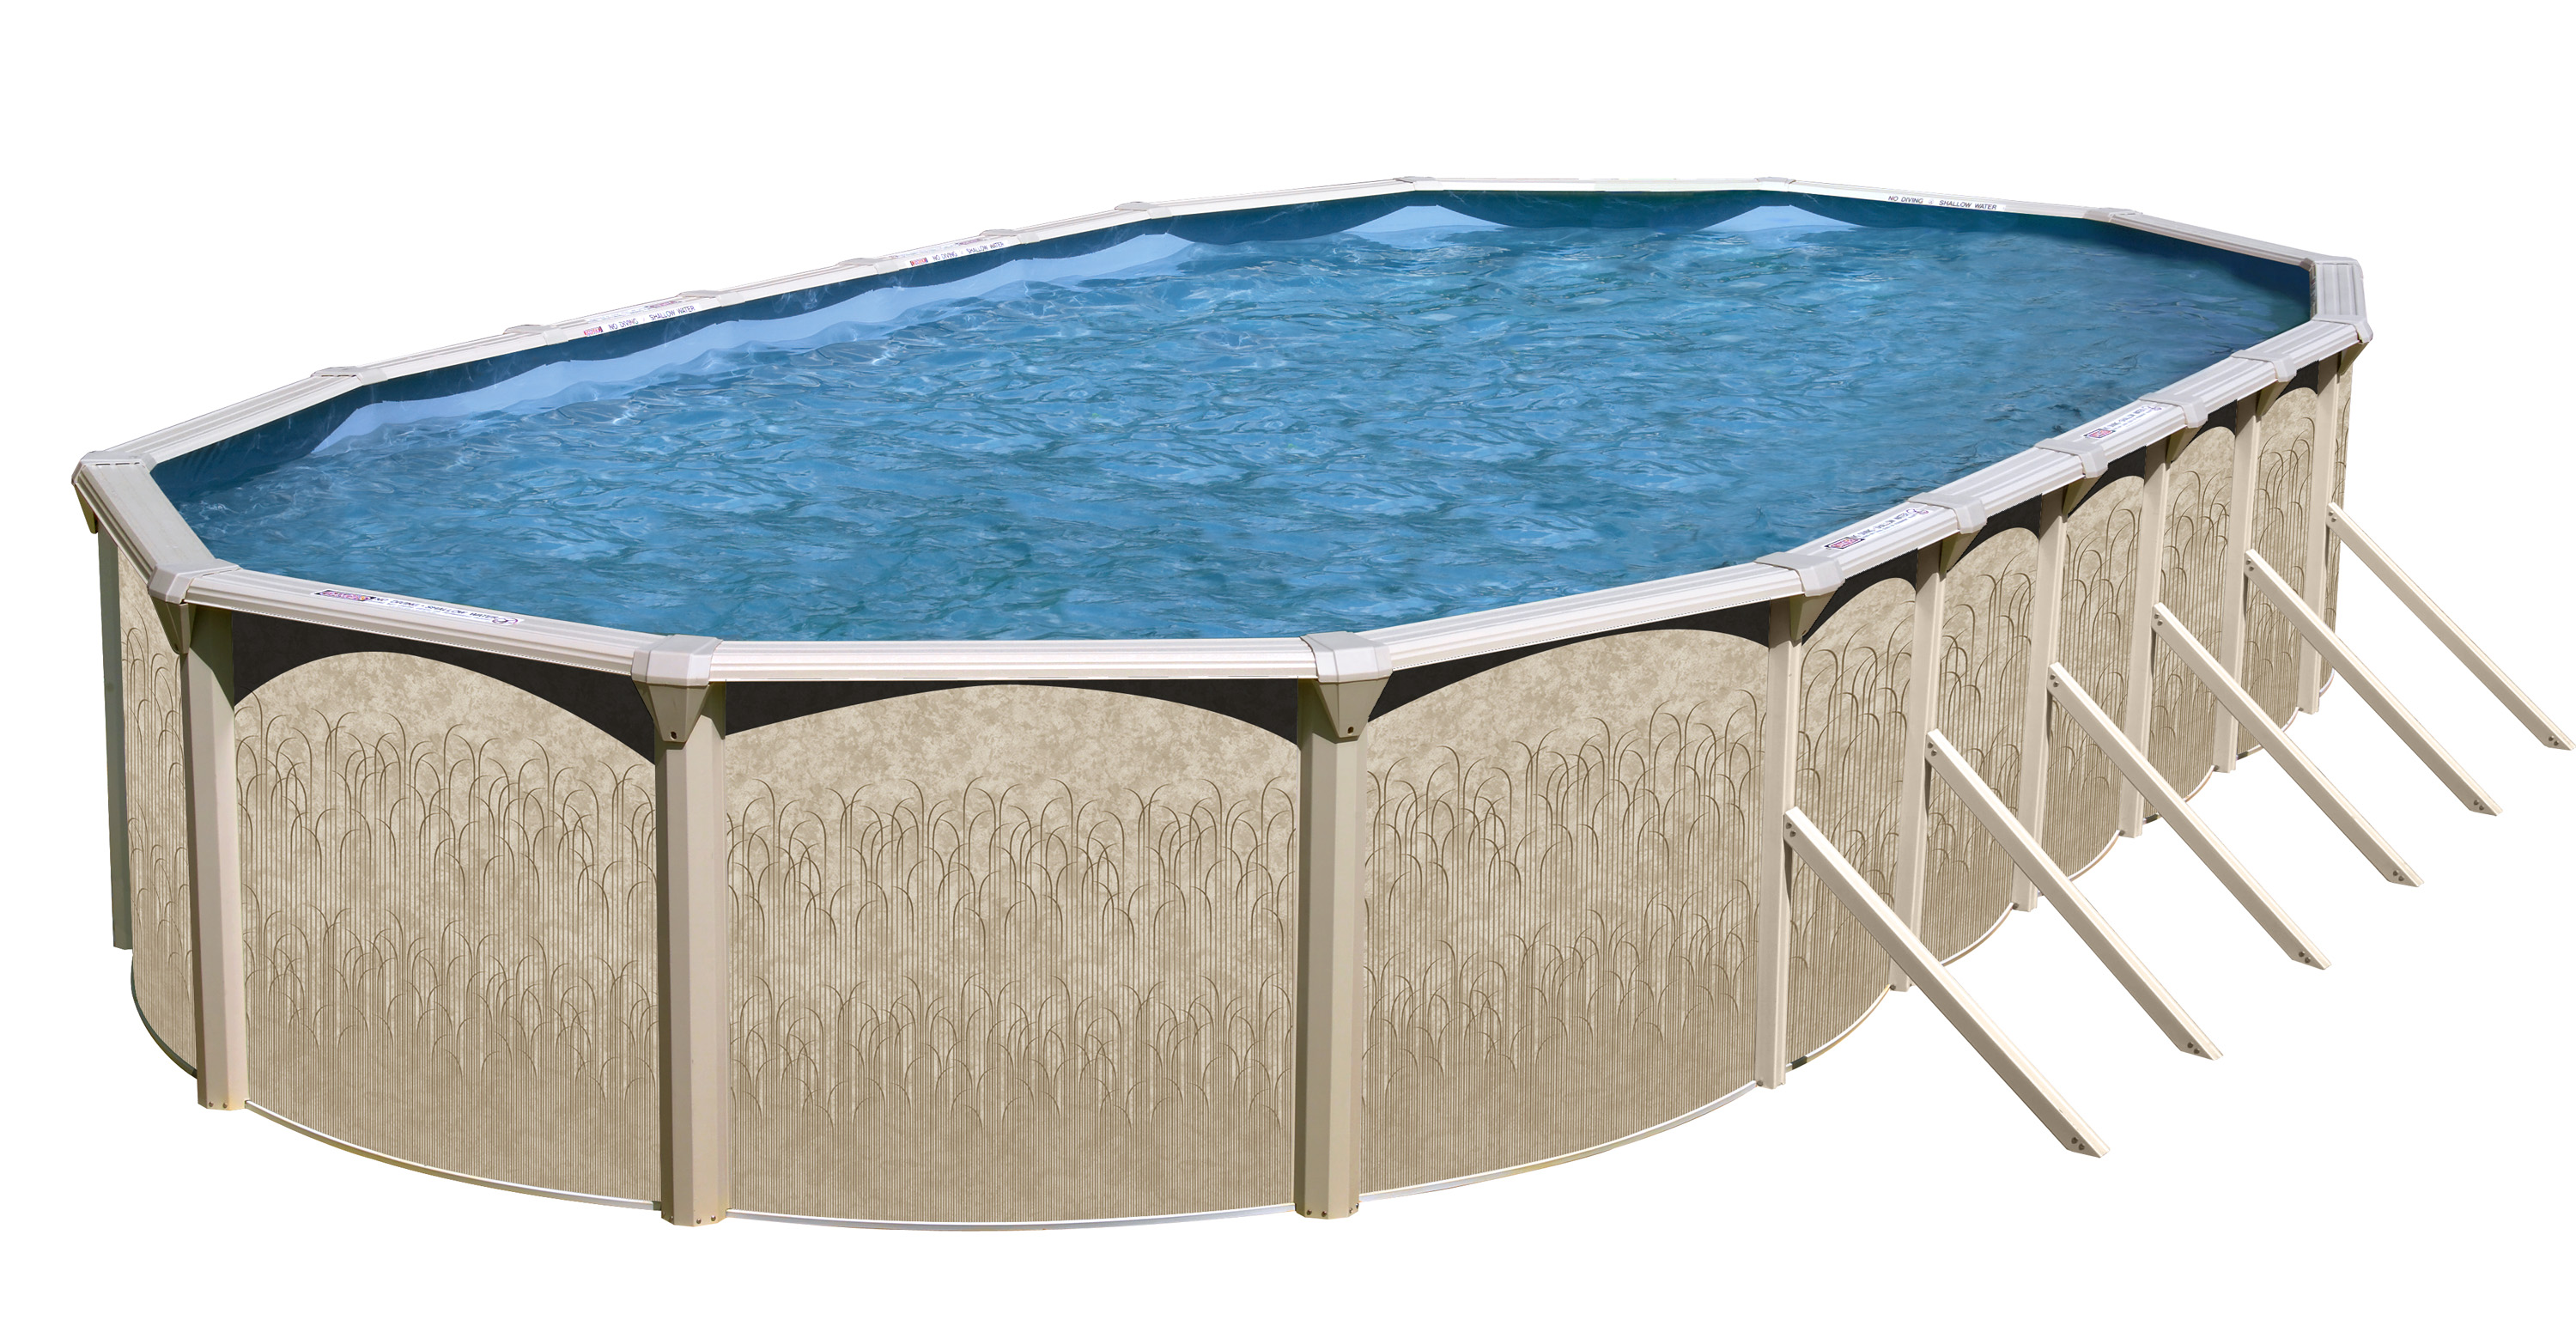 "Galveston 30' X 15' x 52"" Oval Above Ground Pool package by Swim N Play"